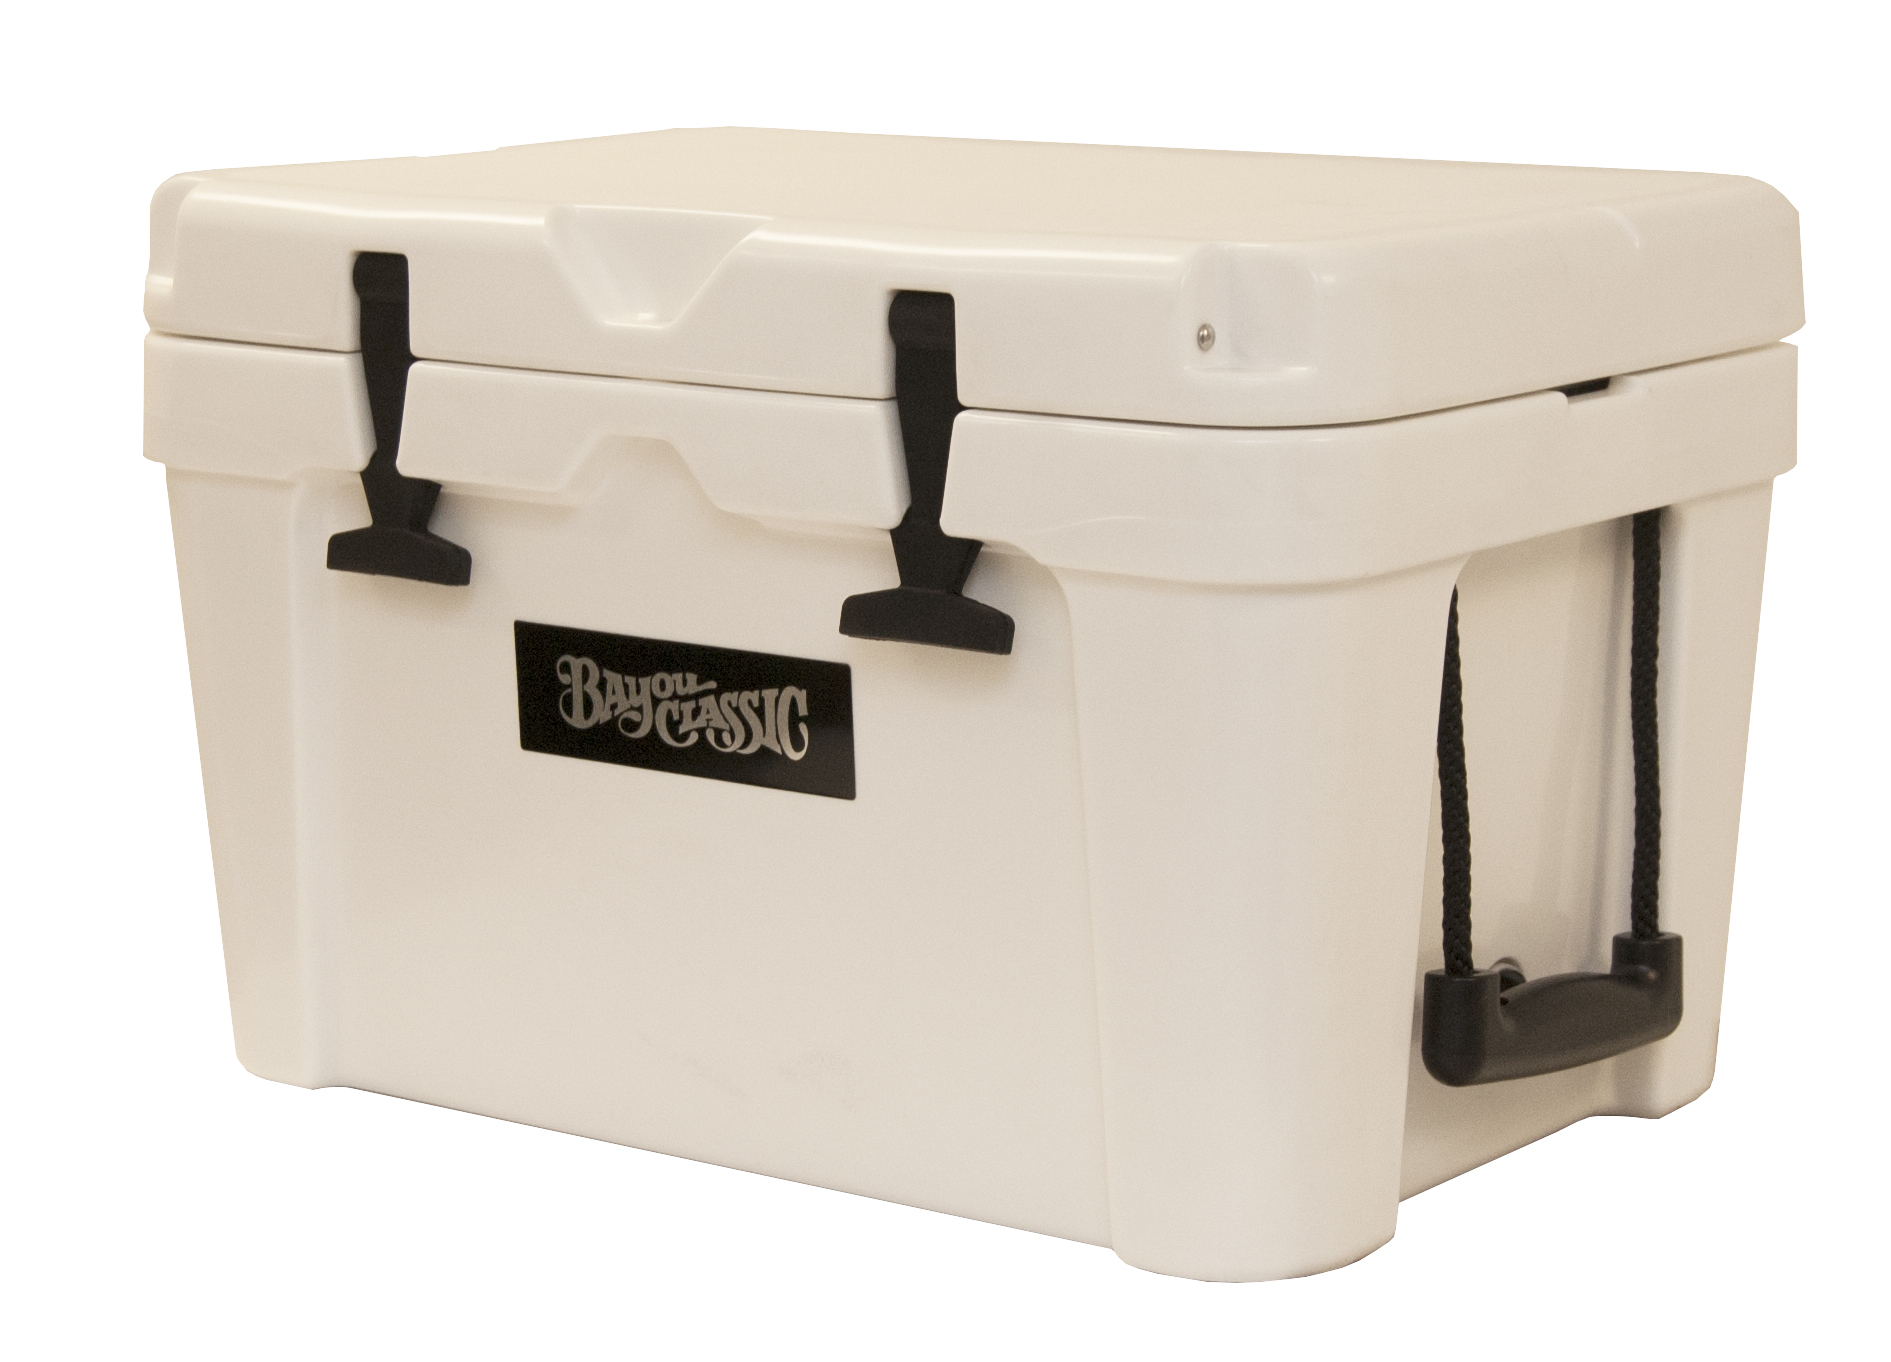 Bayou Classic BC25W 25 Litre Roto Mold Cooler, White